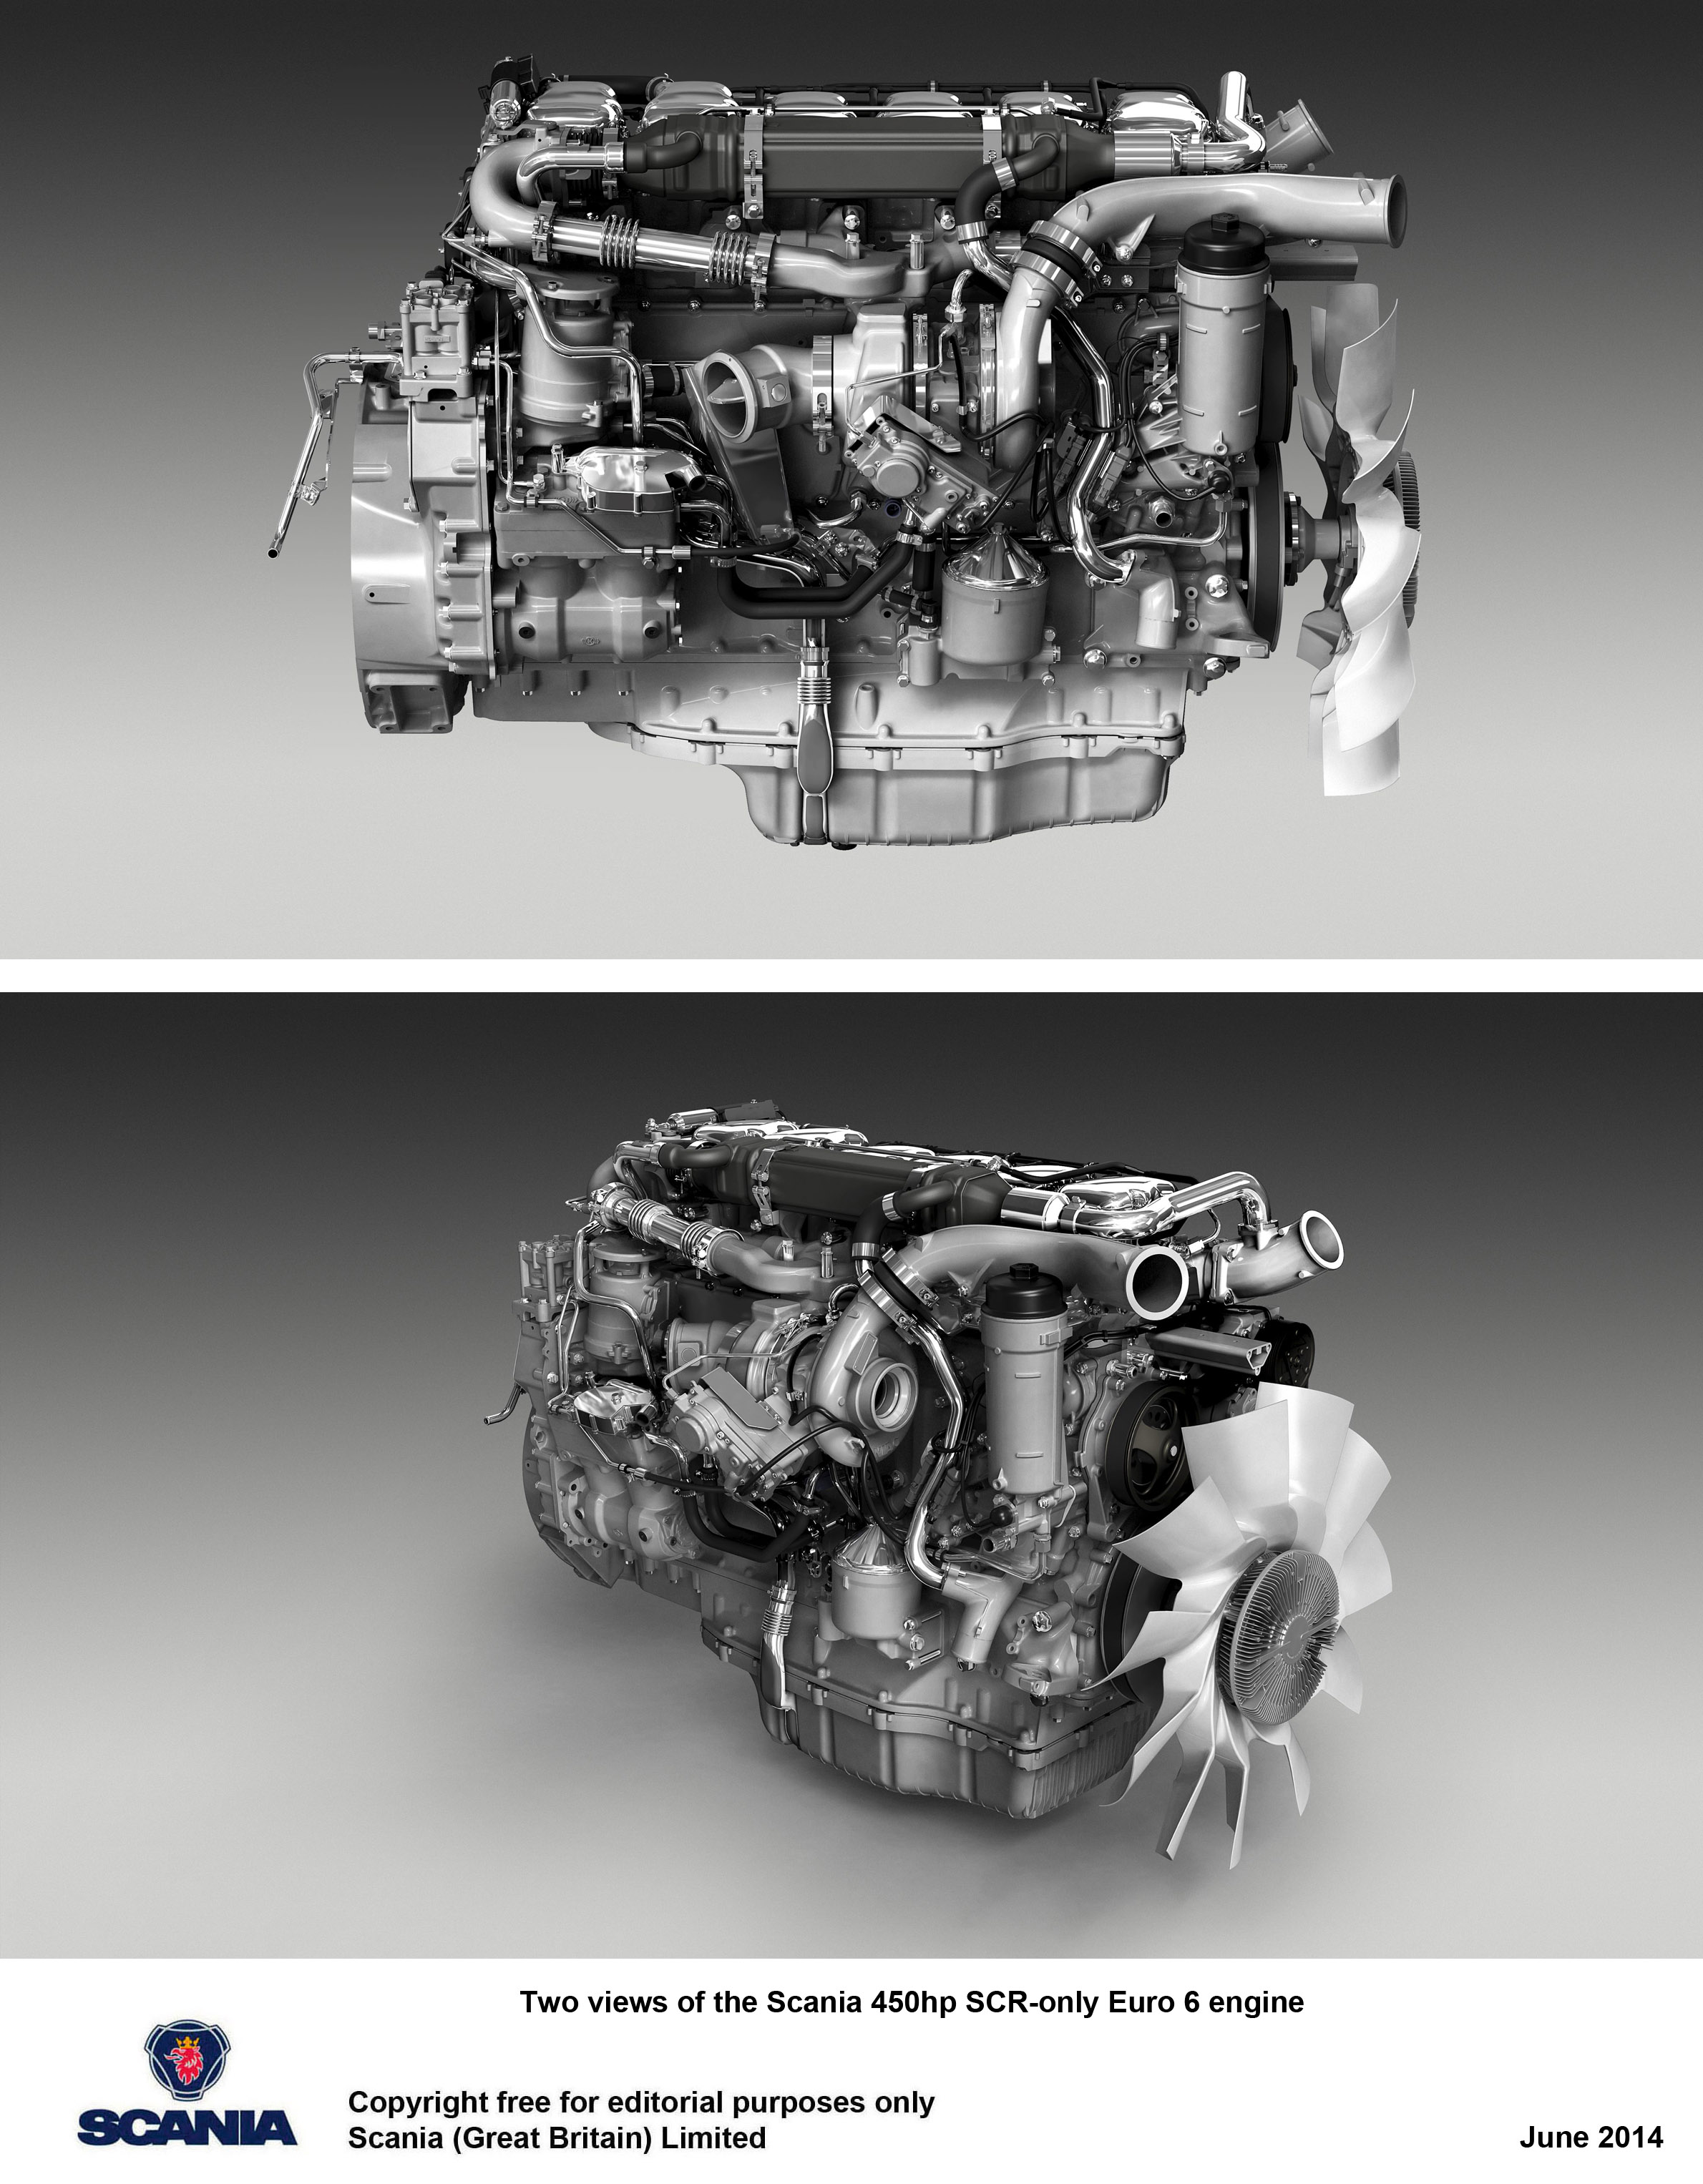 Scania launches SCR-only 450 hp engine - Keltruck Scania